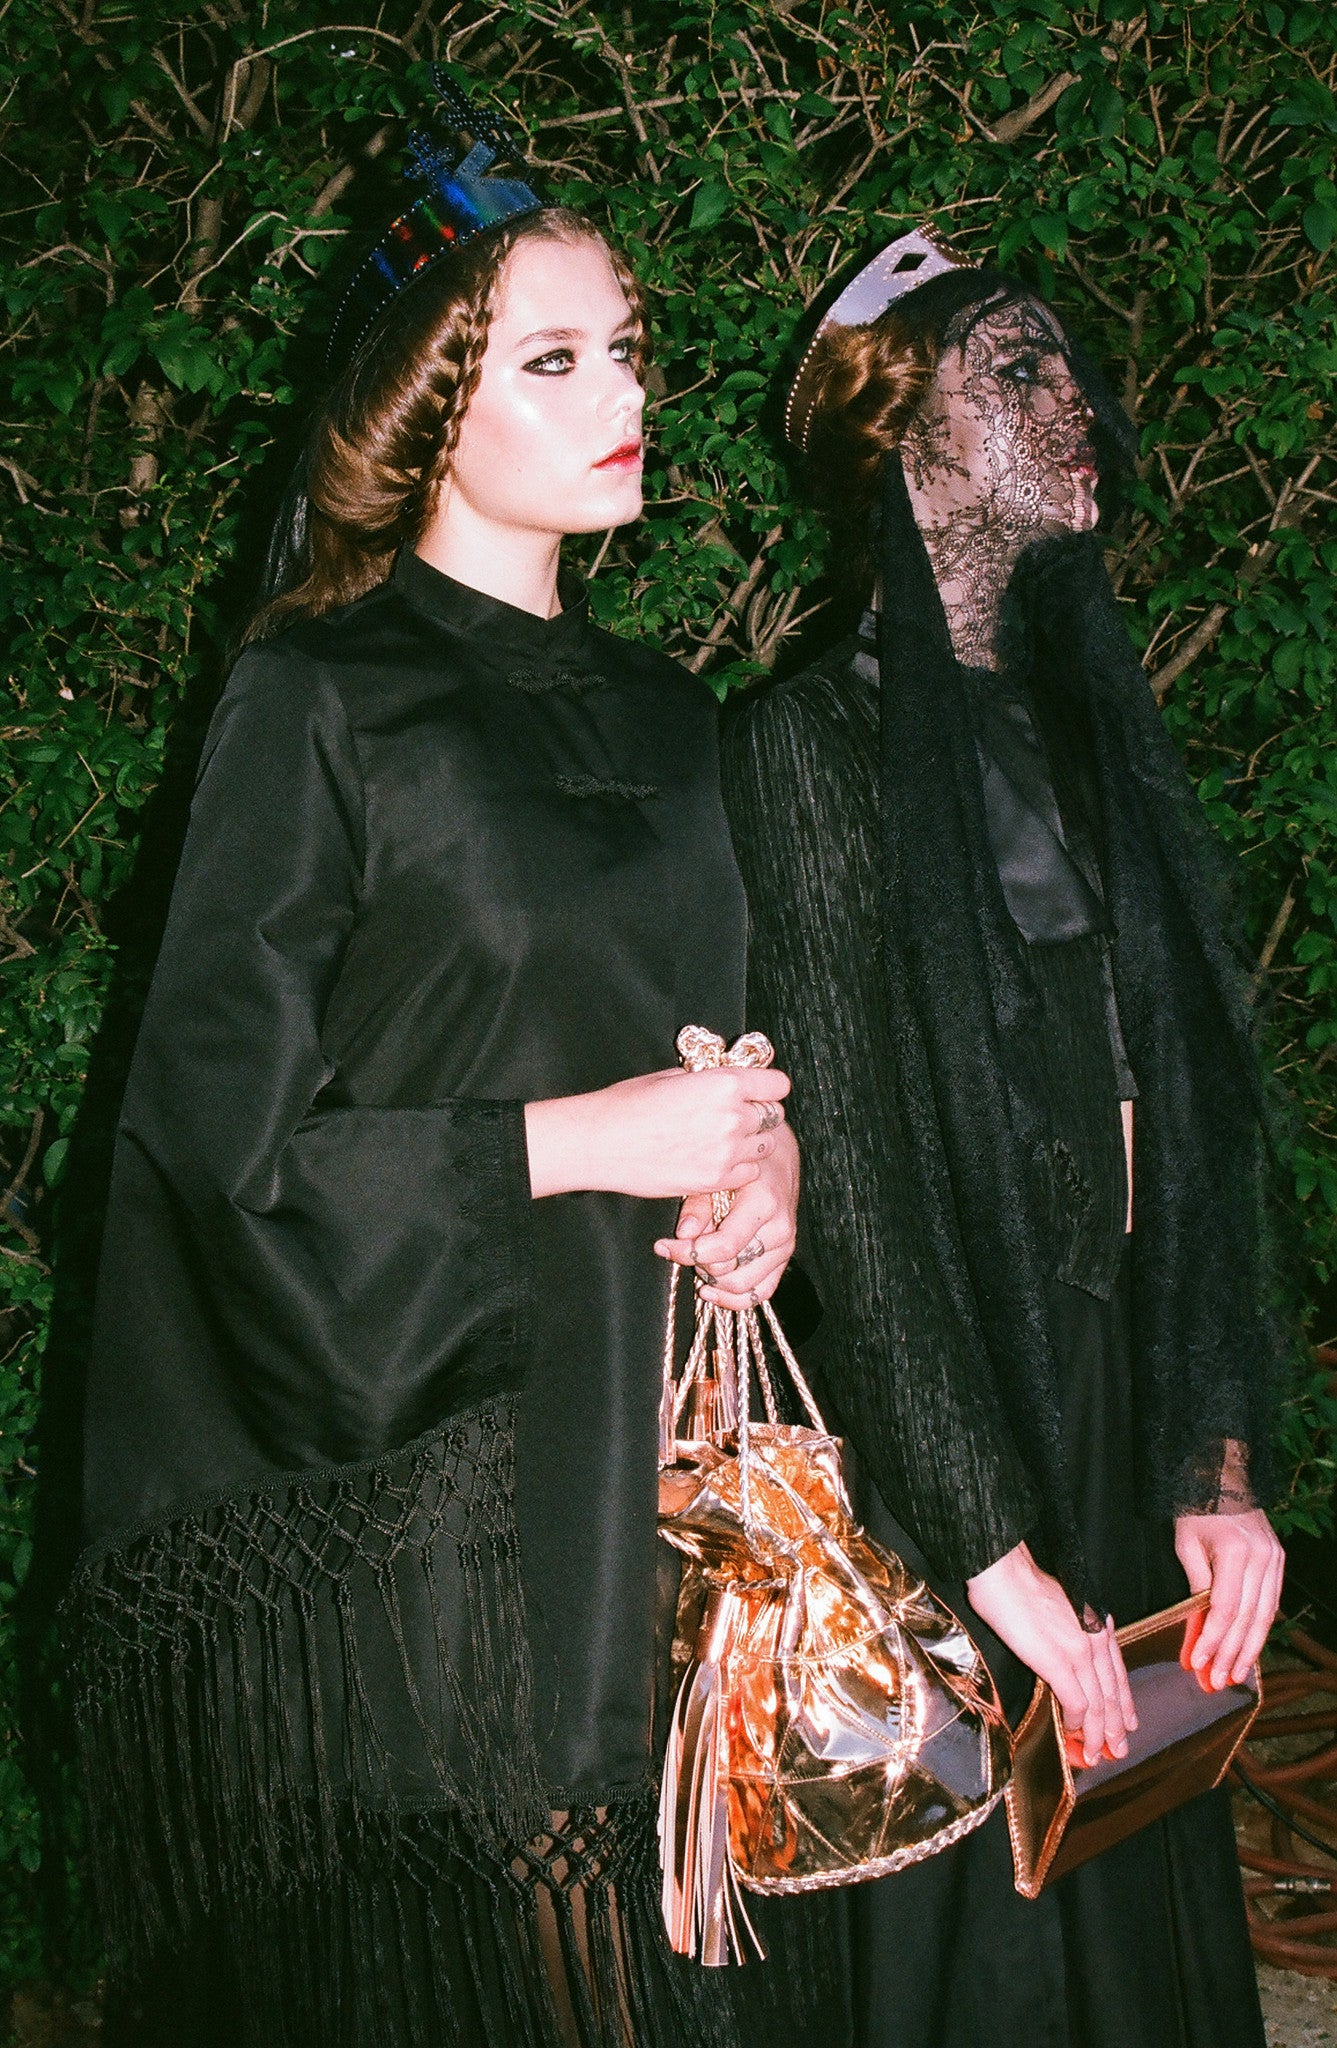 Solveig IMG Model Wendy Nichol First Fashion Runway Show SS14 Saints of the Zodiac Astrological Sign Pisces Fringe Cape Kimono Jacket Silk Tulle Sheer Black Veil Leather Queen Crown Elizabethan Victorian Gothic Sea Witch High Priestess Copper Metallic Bullet Bucket Bag Handmade in NYC New York City Bespoke Made to Measure Order Custom Tailoring Ali Aliana Lohan